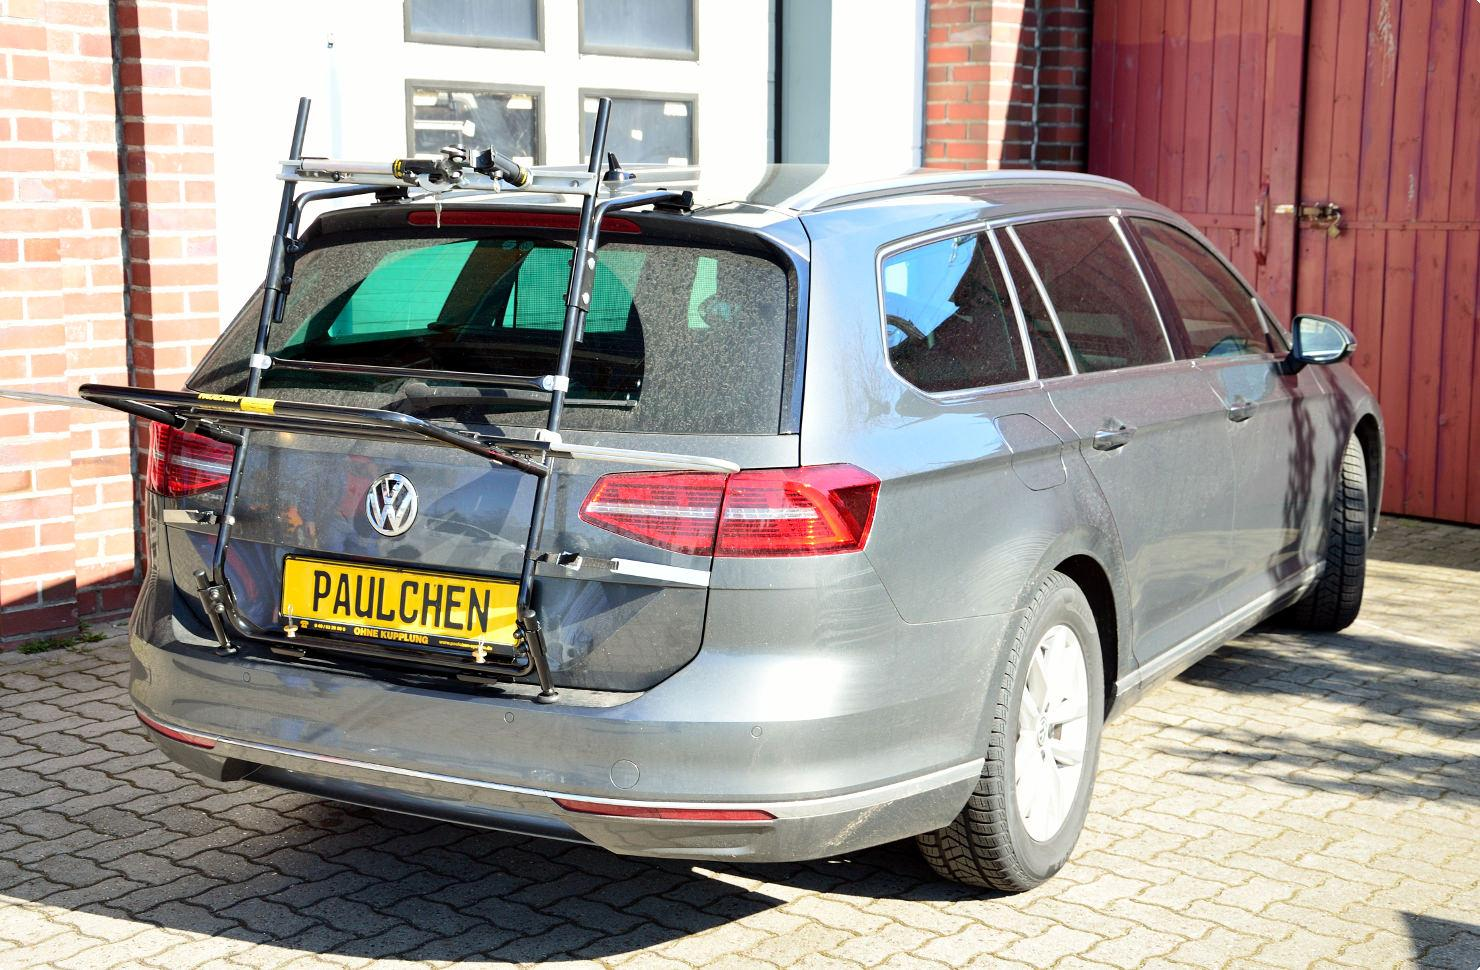 Bicycle carrier for VW Passat Variant (B8/3G5) - Paulchen